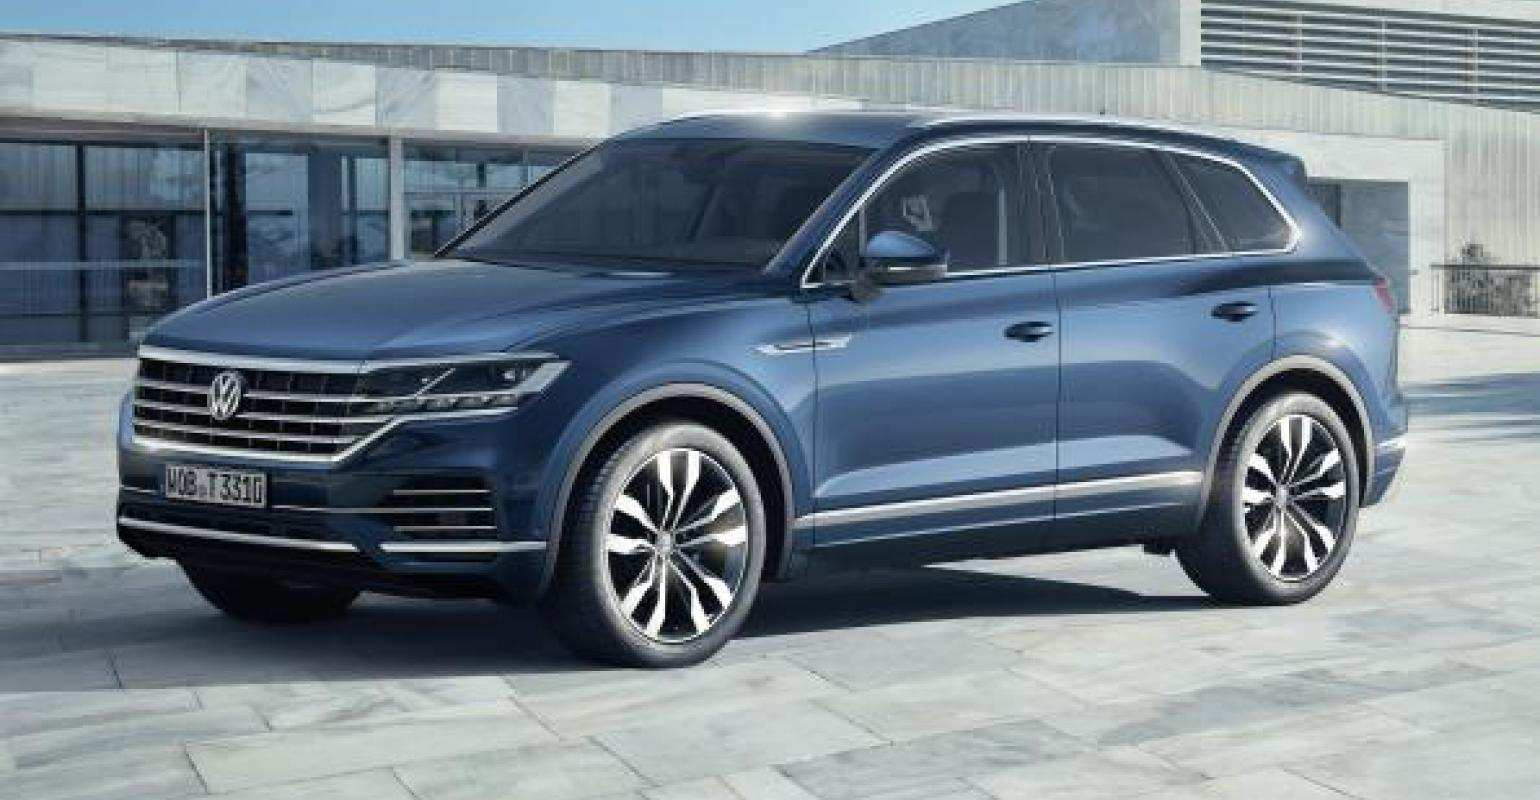 30 Gallery of Volkswagen Touareg 2020 Dimensions New Review with Volkswagen Touareg 2020 Dimensions